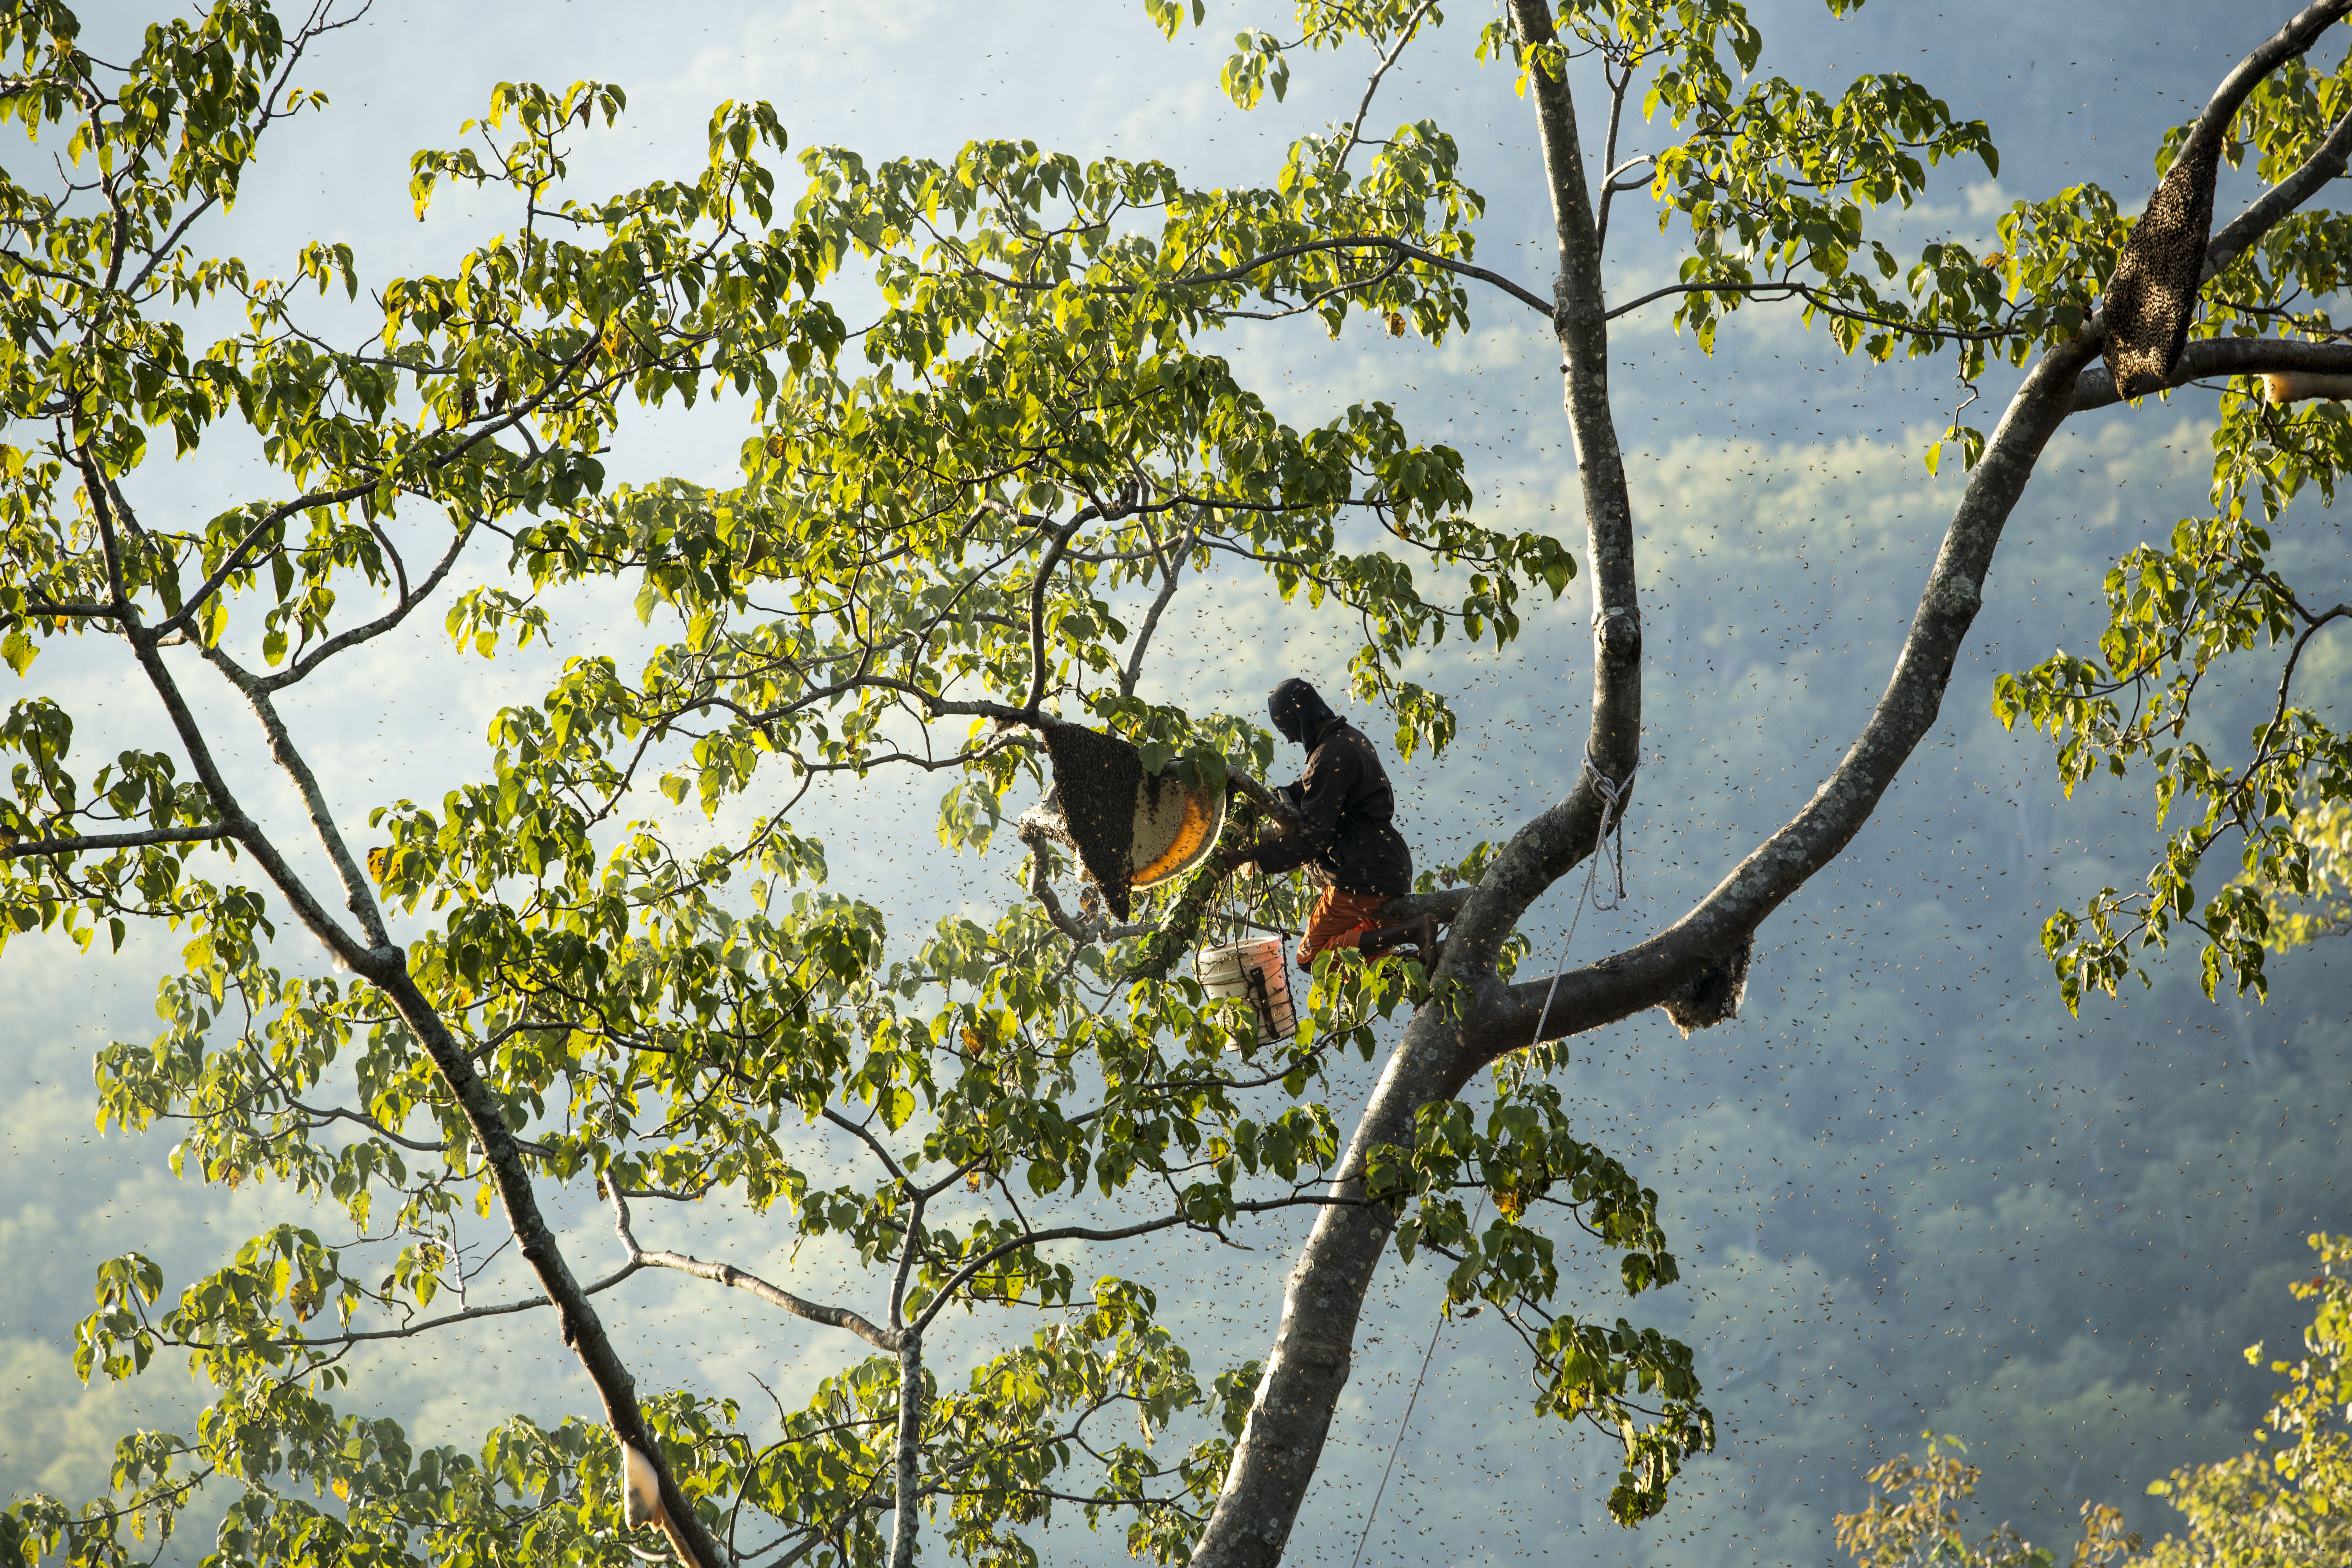 A Molo community member harvesting the honey in the forests of West Timor, Indonesia. (Credit: Center for International Forestry Research)